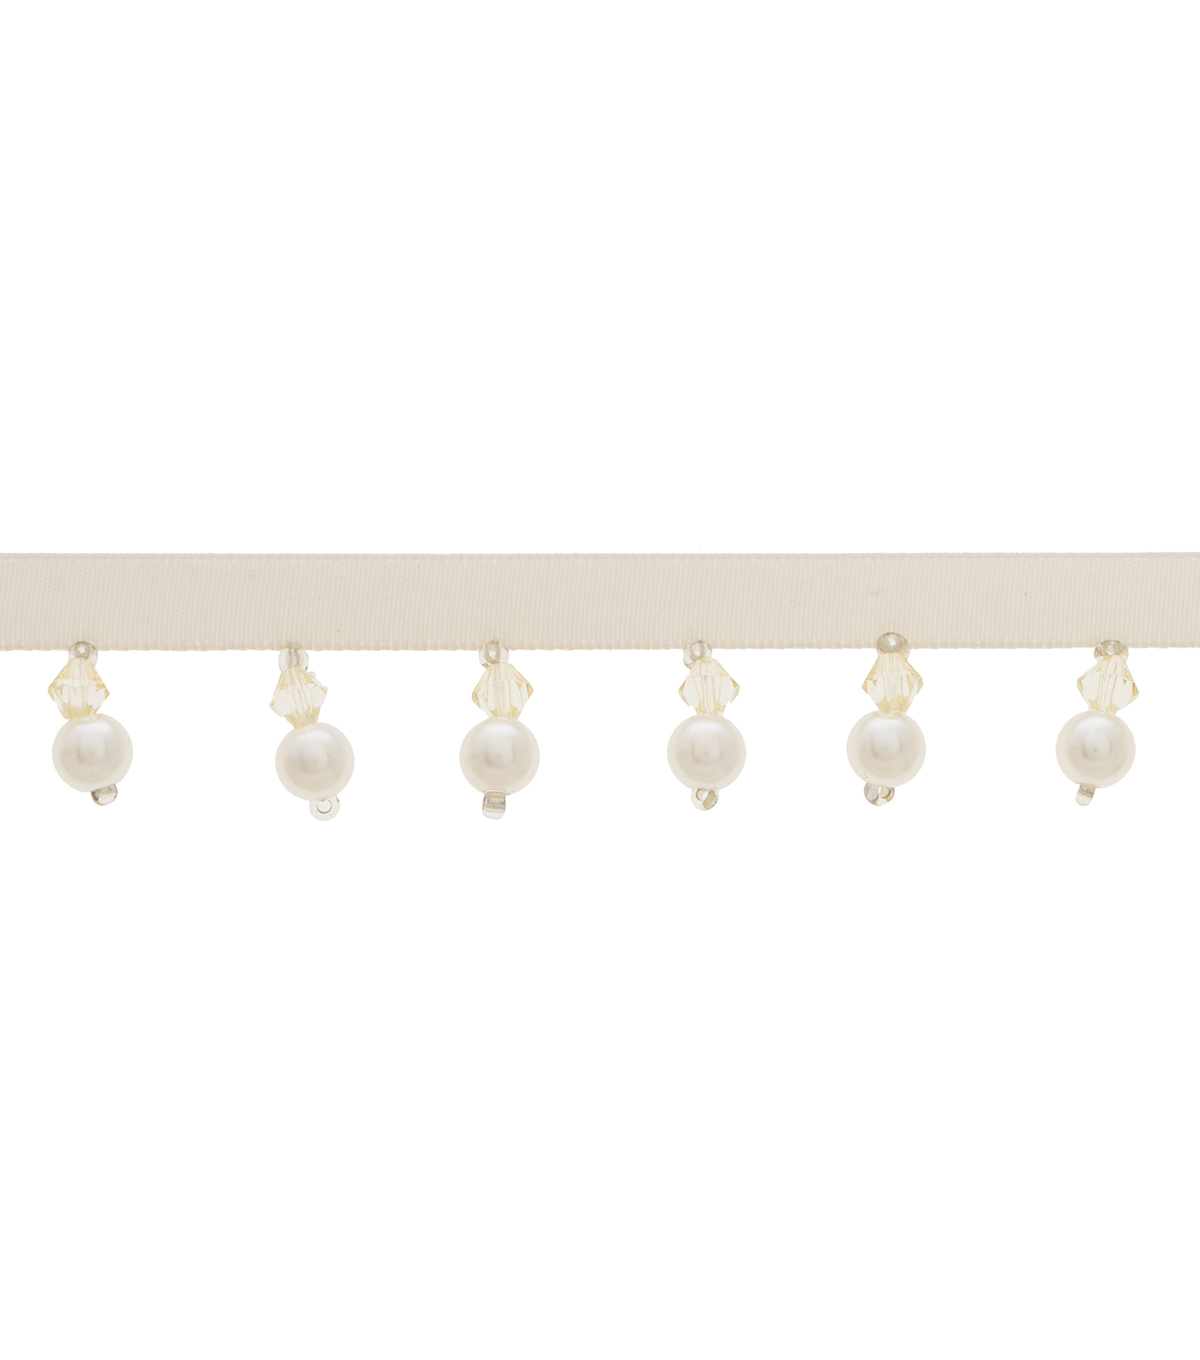 Simplicity Pearl Beaded Trim-Ivory